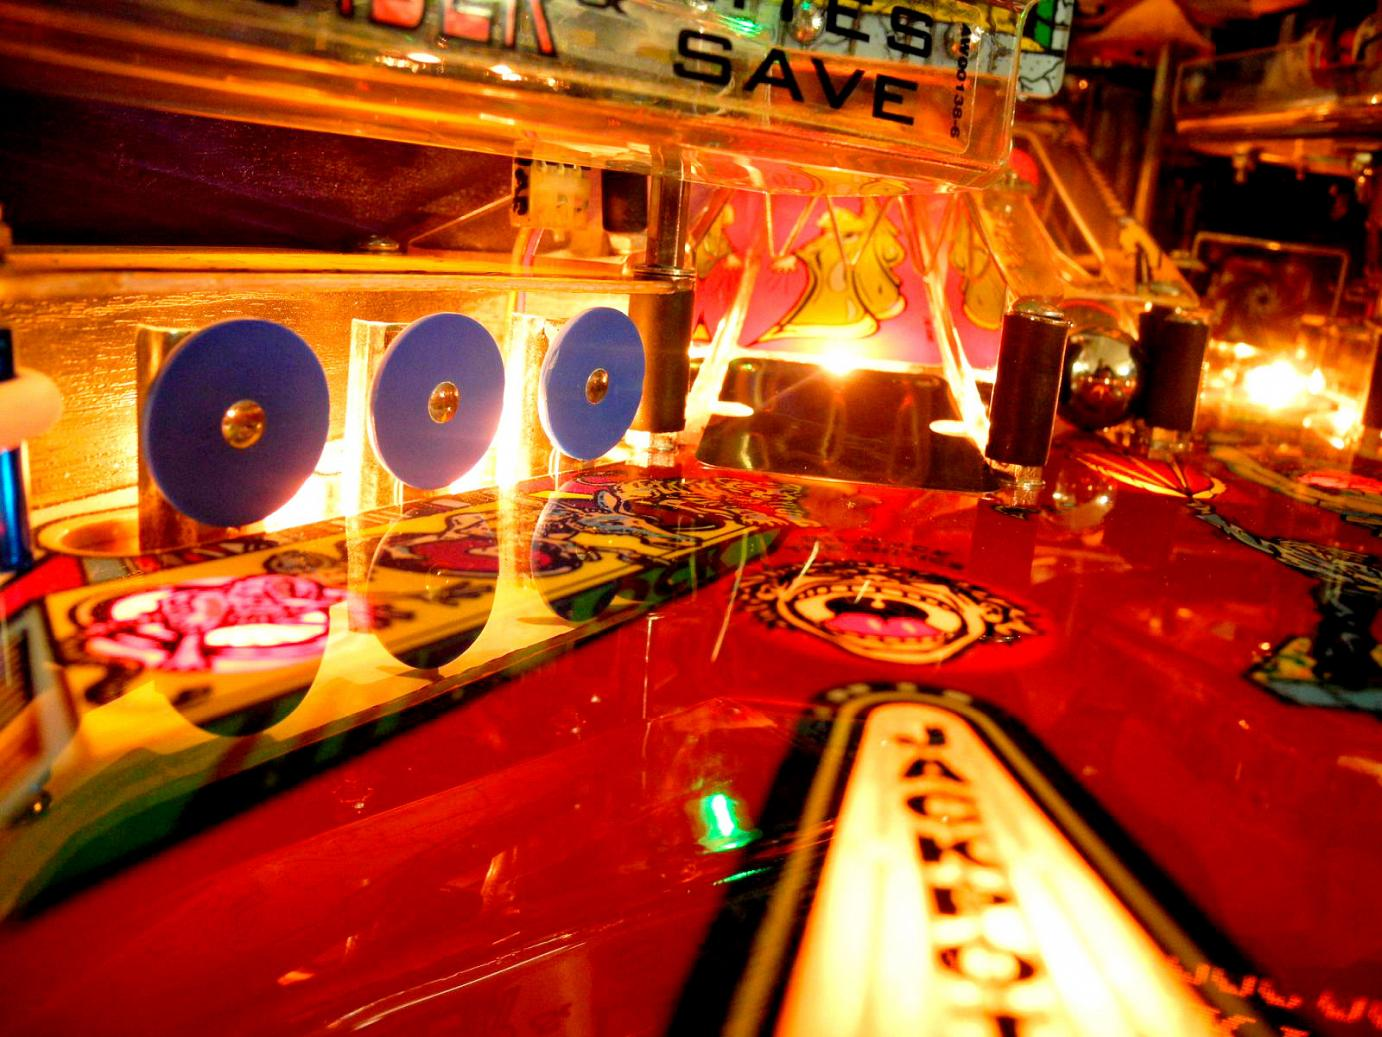 pinball-magic-08.jpg